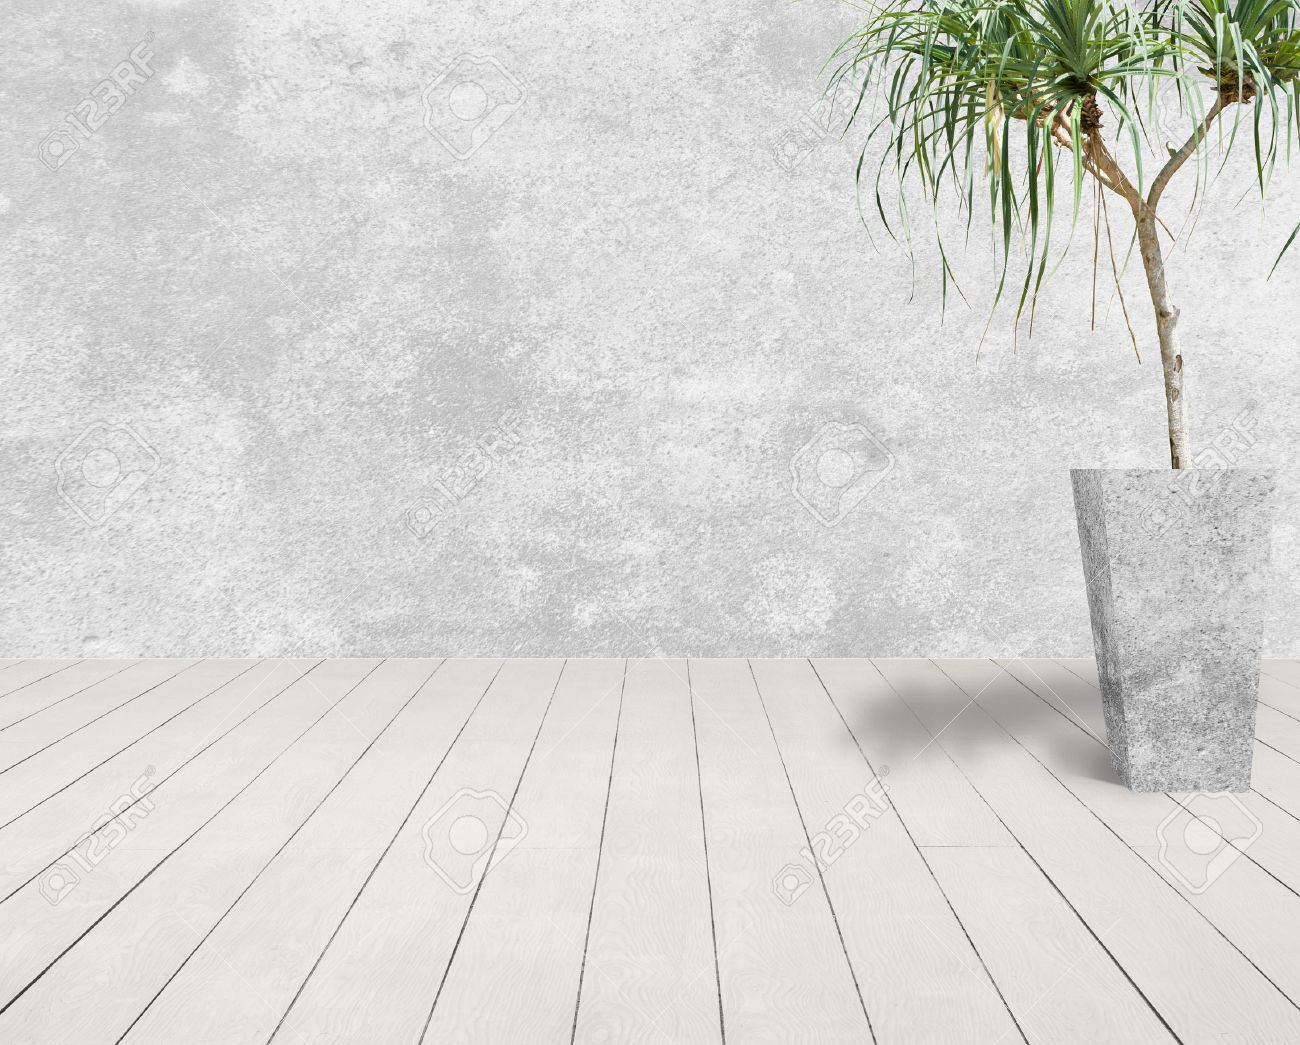 white grunge cement wall and white wood floor with tree in cement pot. Standard-Bild - 23879414